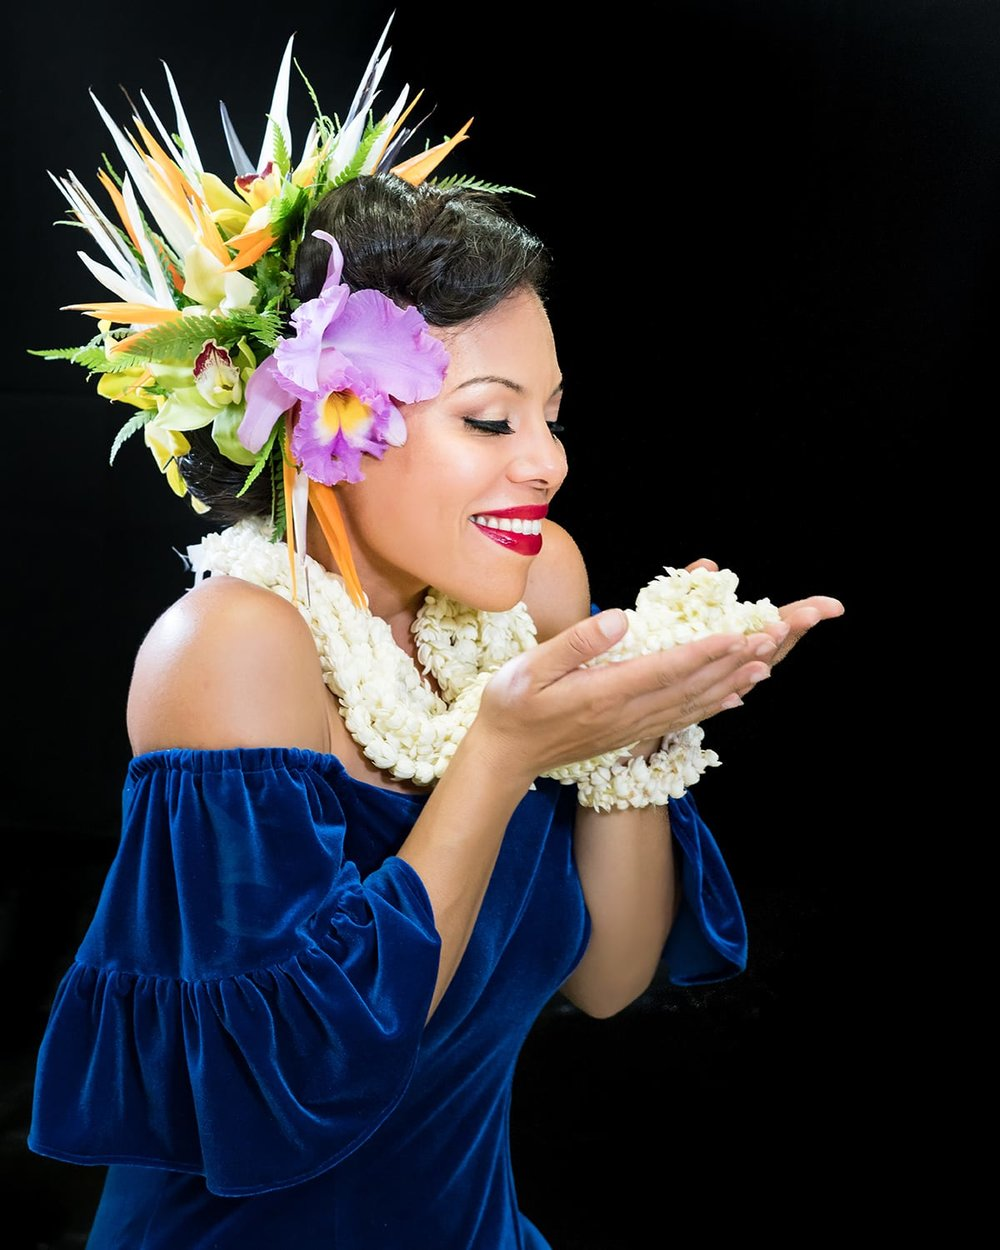 Hawaiian-Performer-Artist-Headshot-Photographer-4.jpg